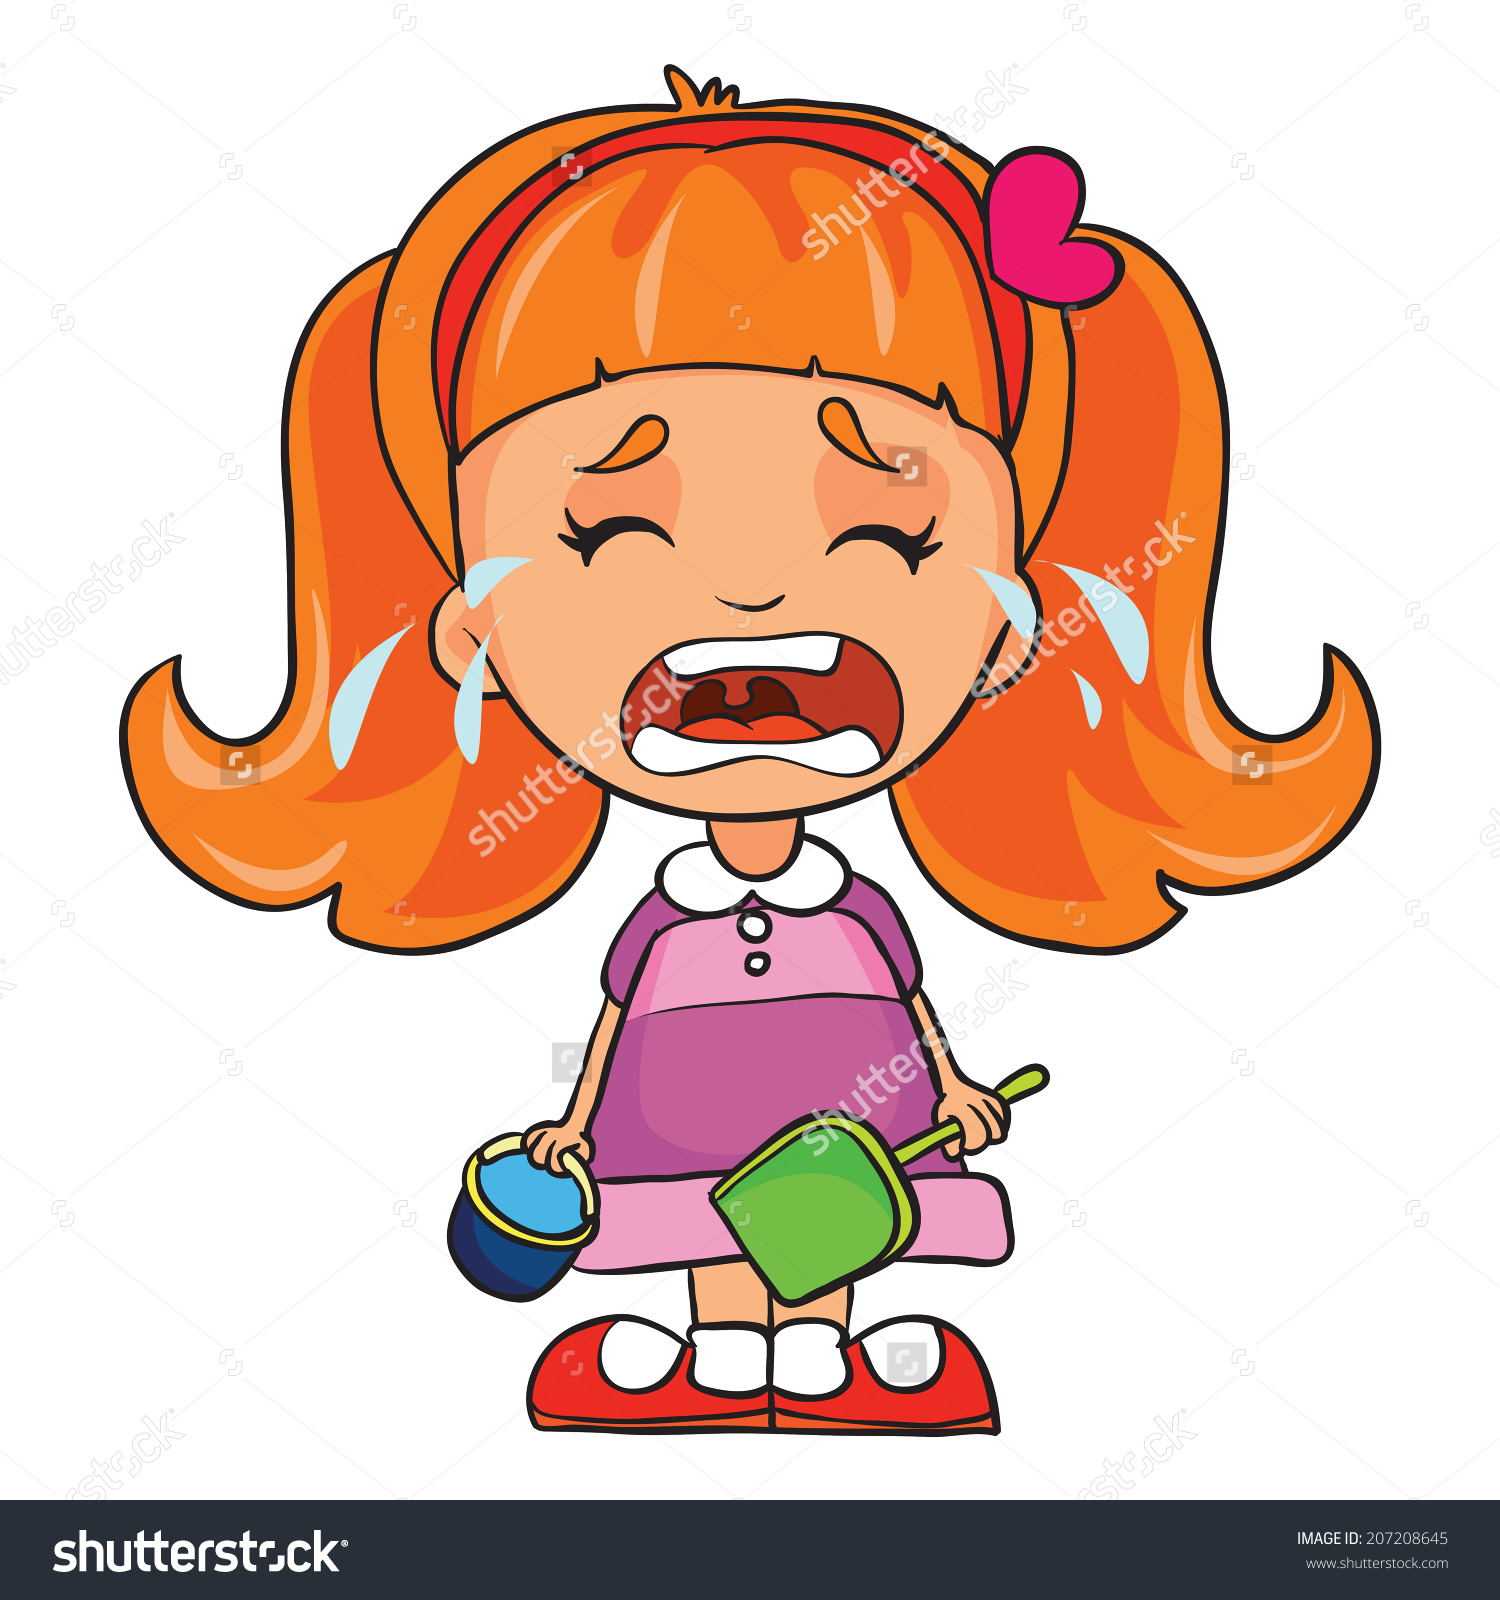 Clipart Of A Girl Crying.